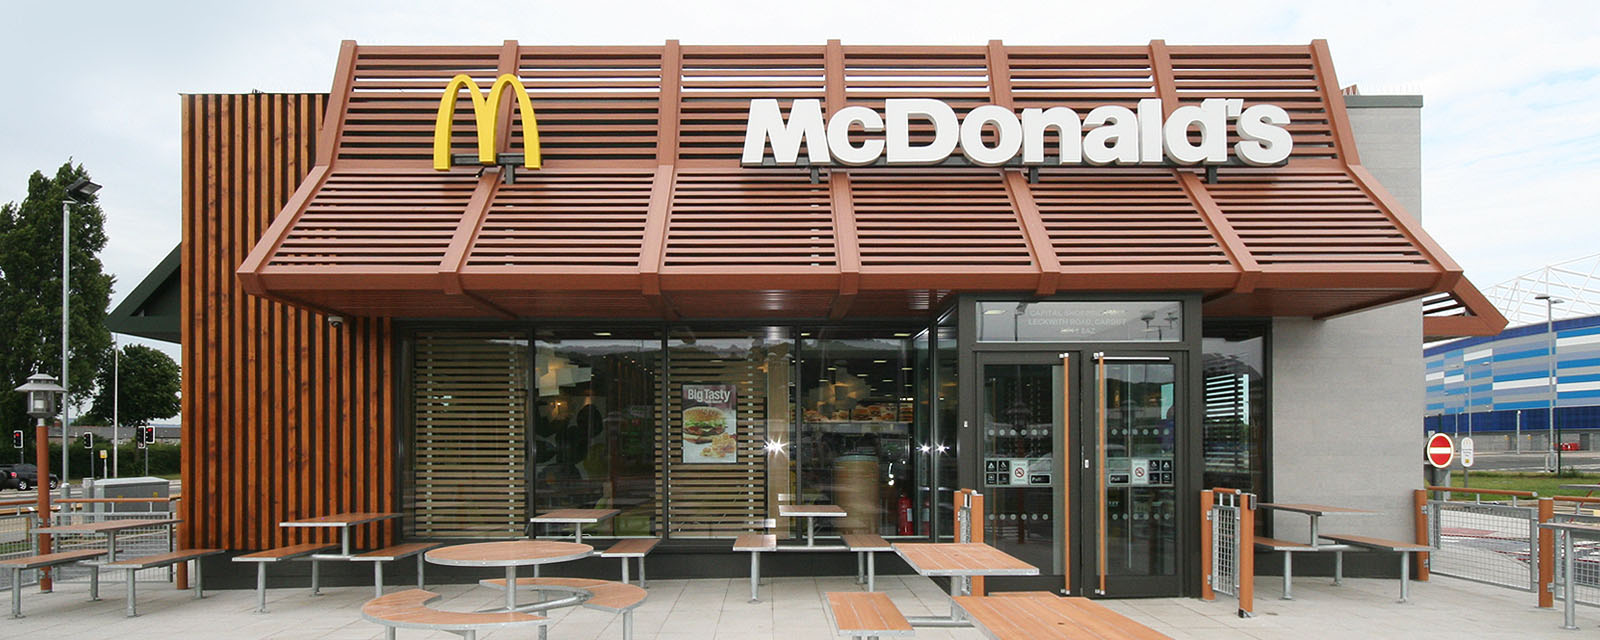 McDonald's workers to go on strike in Britain for first time